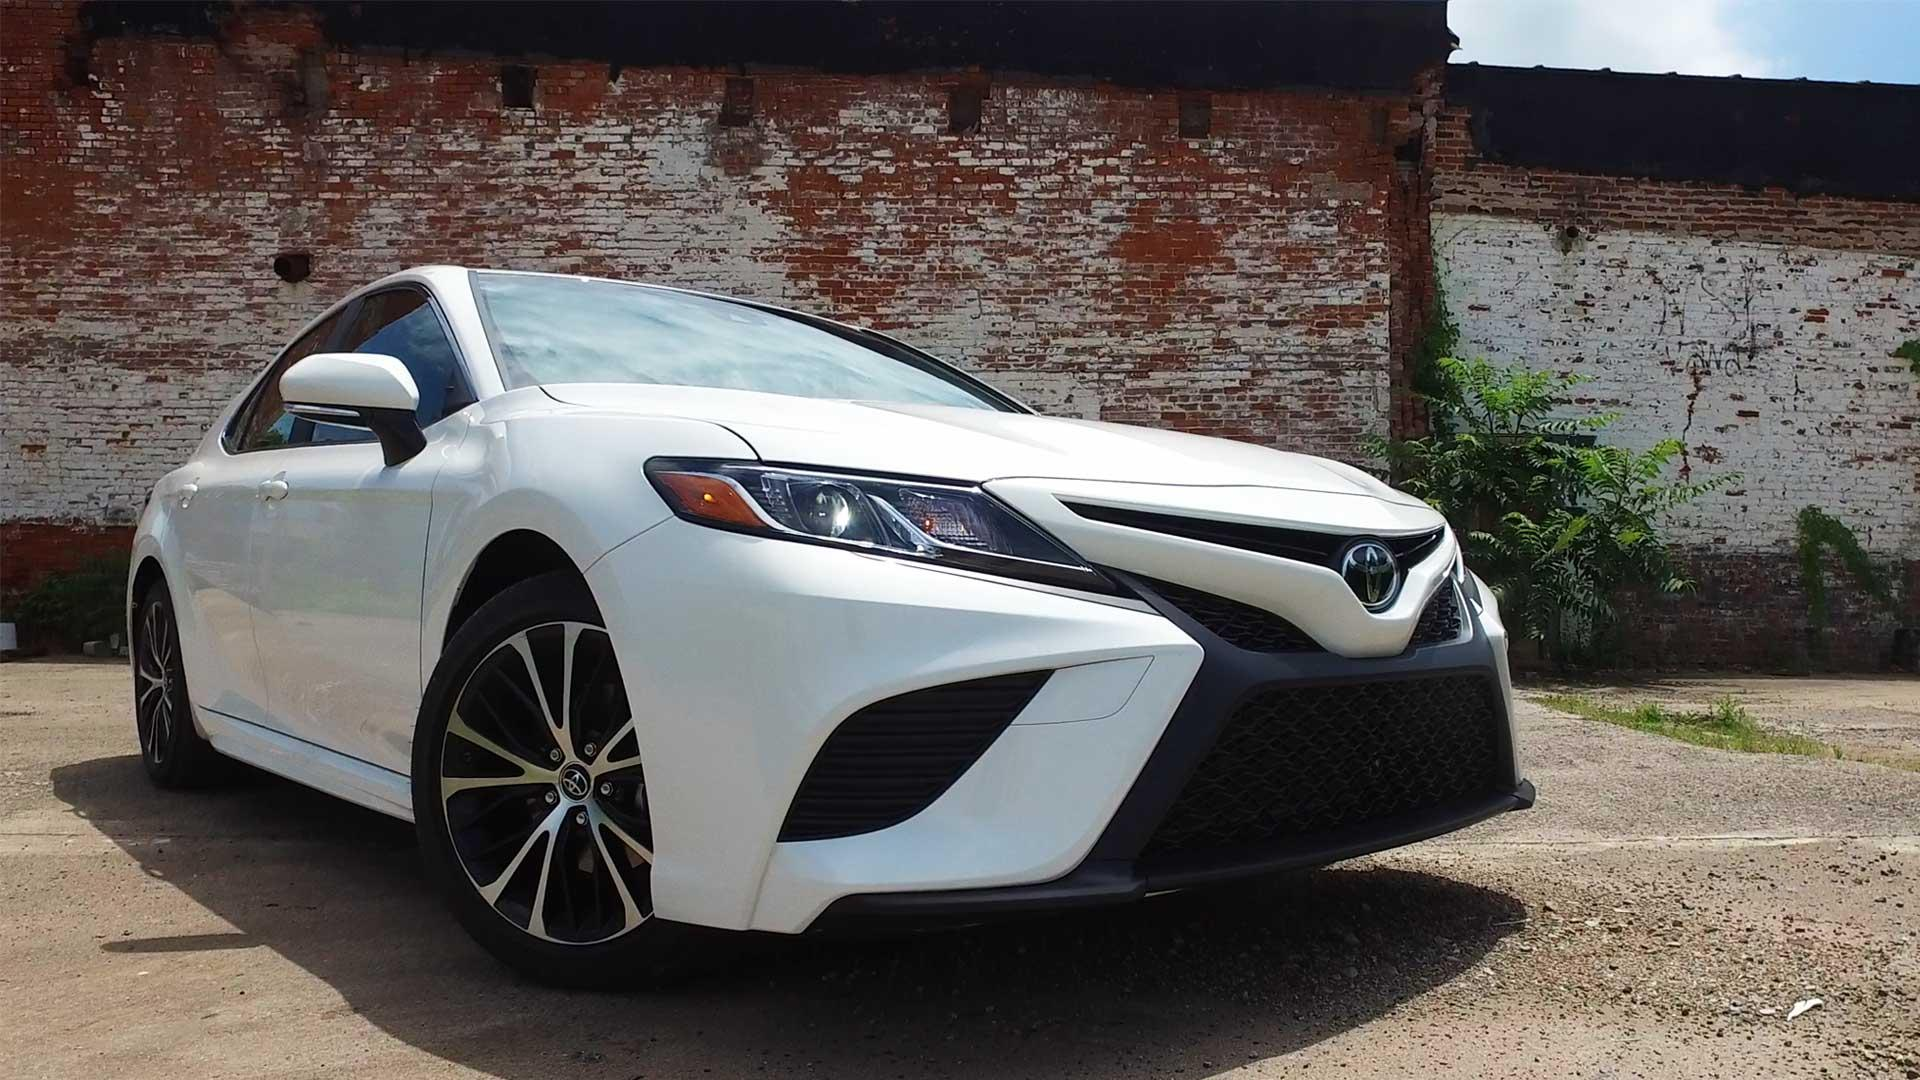 Redesigned 2018 Toyota Camry Adds Flavor, Inside and Out - Consumer Reports